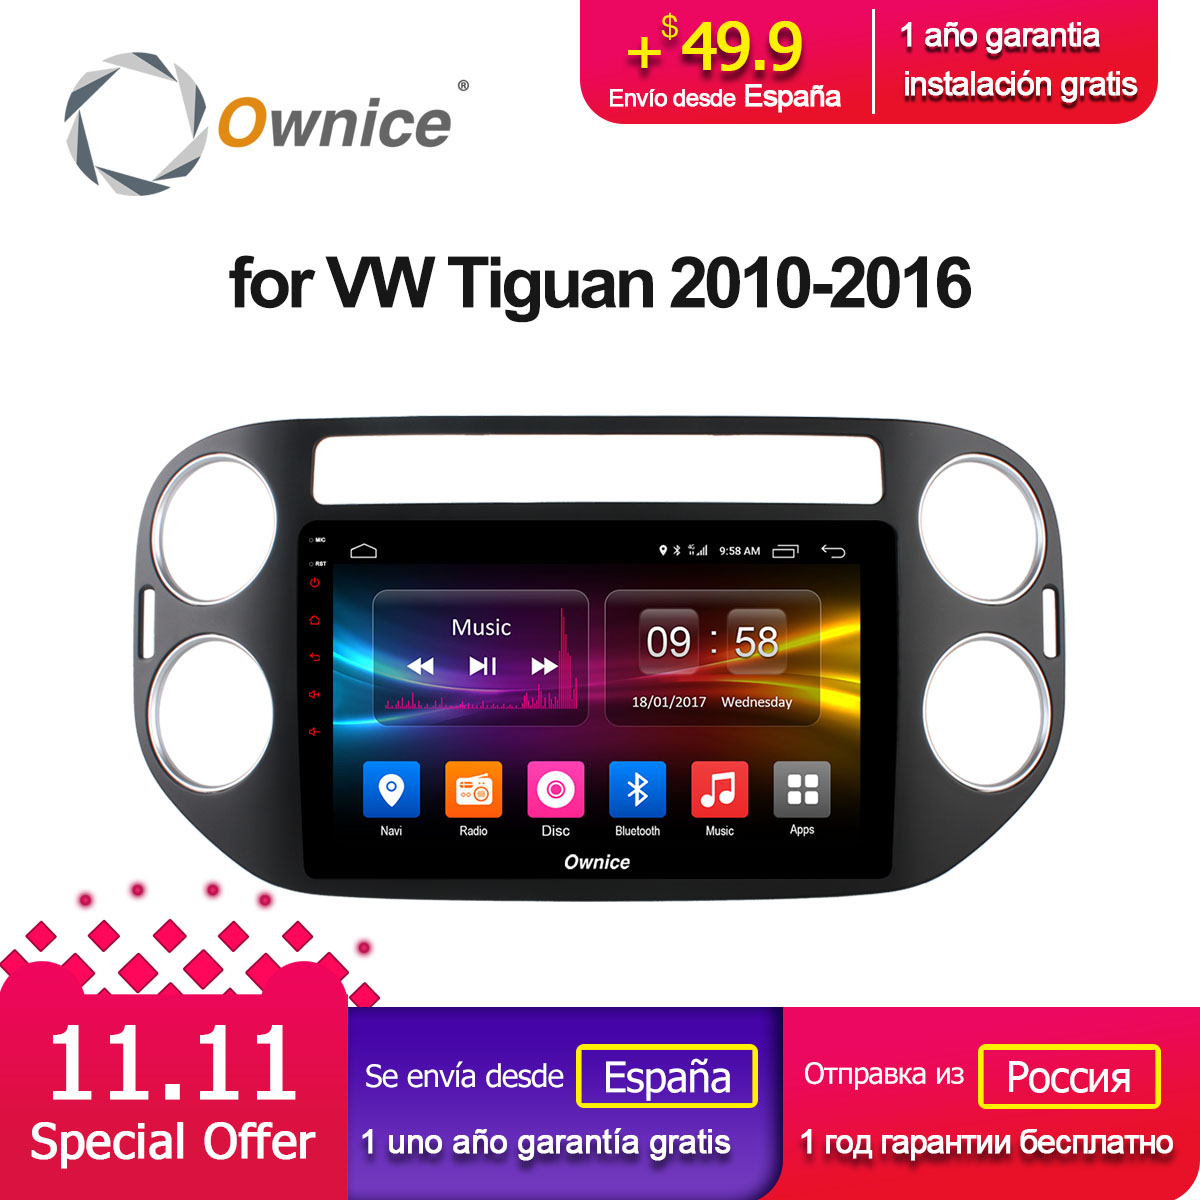 Ownice C500+ G10 Android 8.1 Octa 8 core car DVD radio gps navi for VW Tiguan 2010 2011 2012 2013 2014 2015 2016 2G RAM 32G ROM ownice c500 g10 android 8 1 for suzuki swift 2018 octa core 2g ram 32g rom 8 core car dvd player gps car rds radio wifi 4g lte